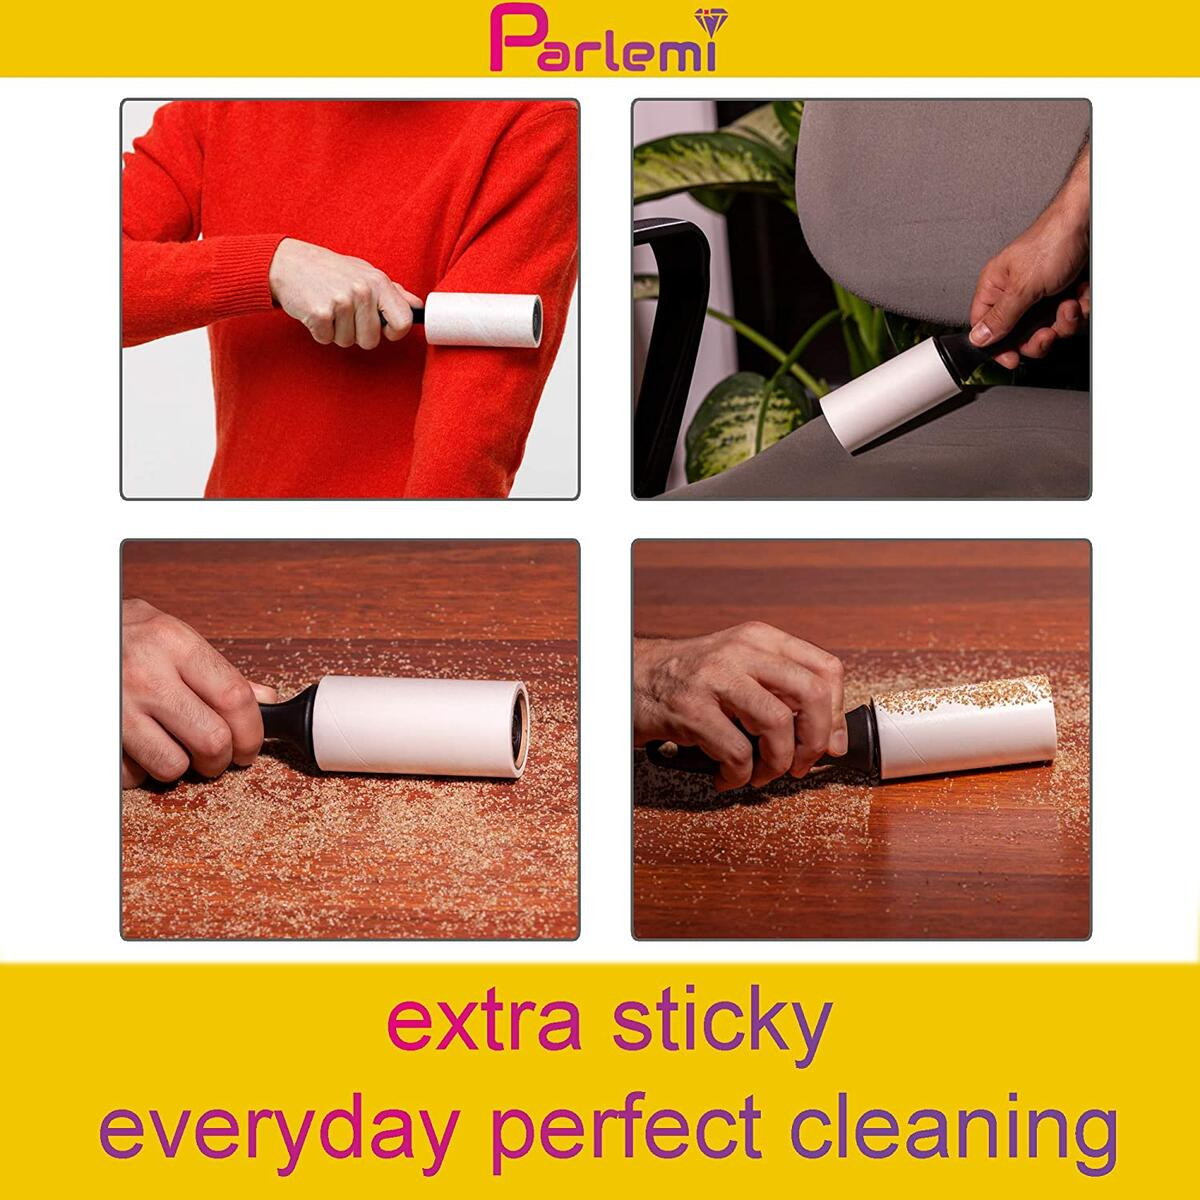 Lint Rollers for Pet Hair Extra Sticky - (2 Handles, 4 Refills - 240 Sheets) - Lint Brush Pet Hair Remover - Cat, Dog Hair Lint Roller - Clothes, Furniture, Carpet, Floor Dust and Fuzz Remover